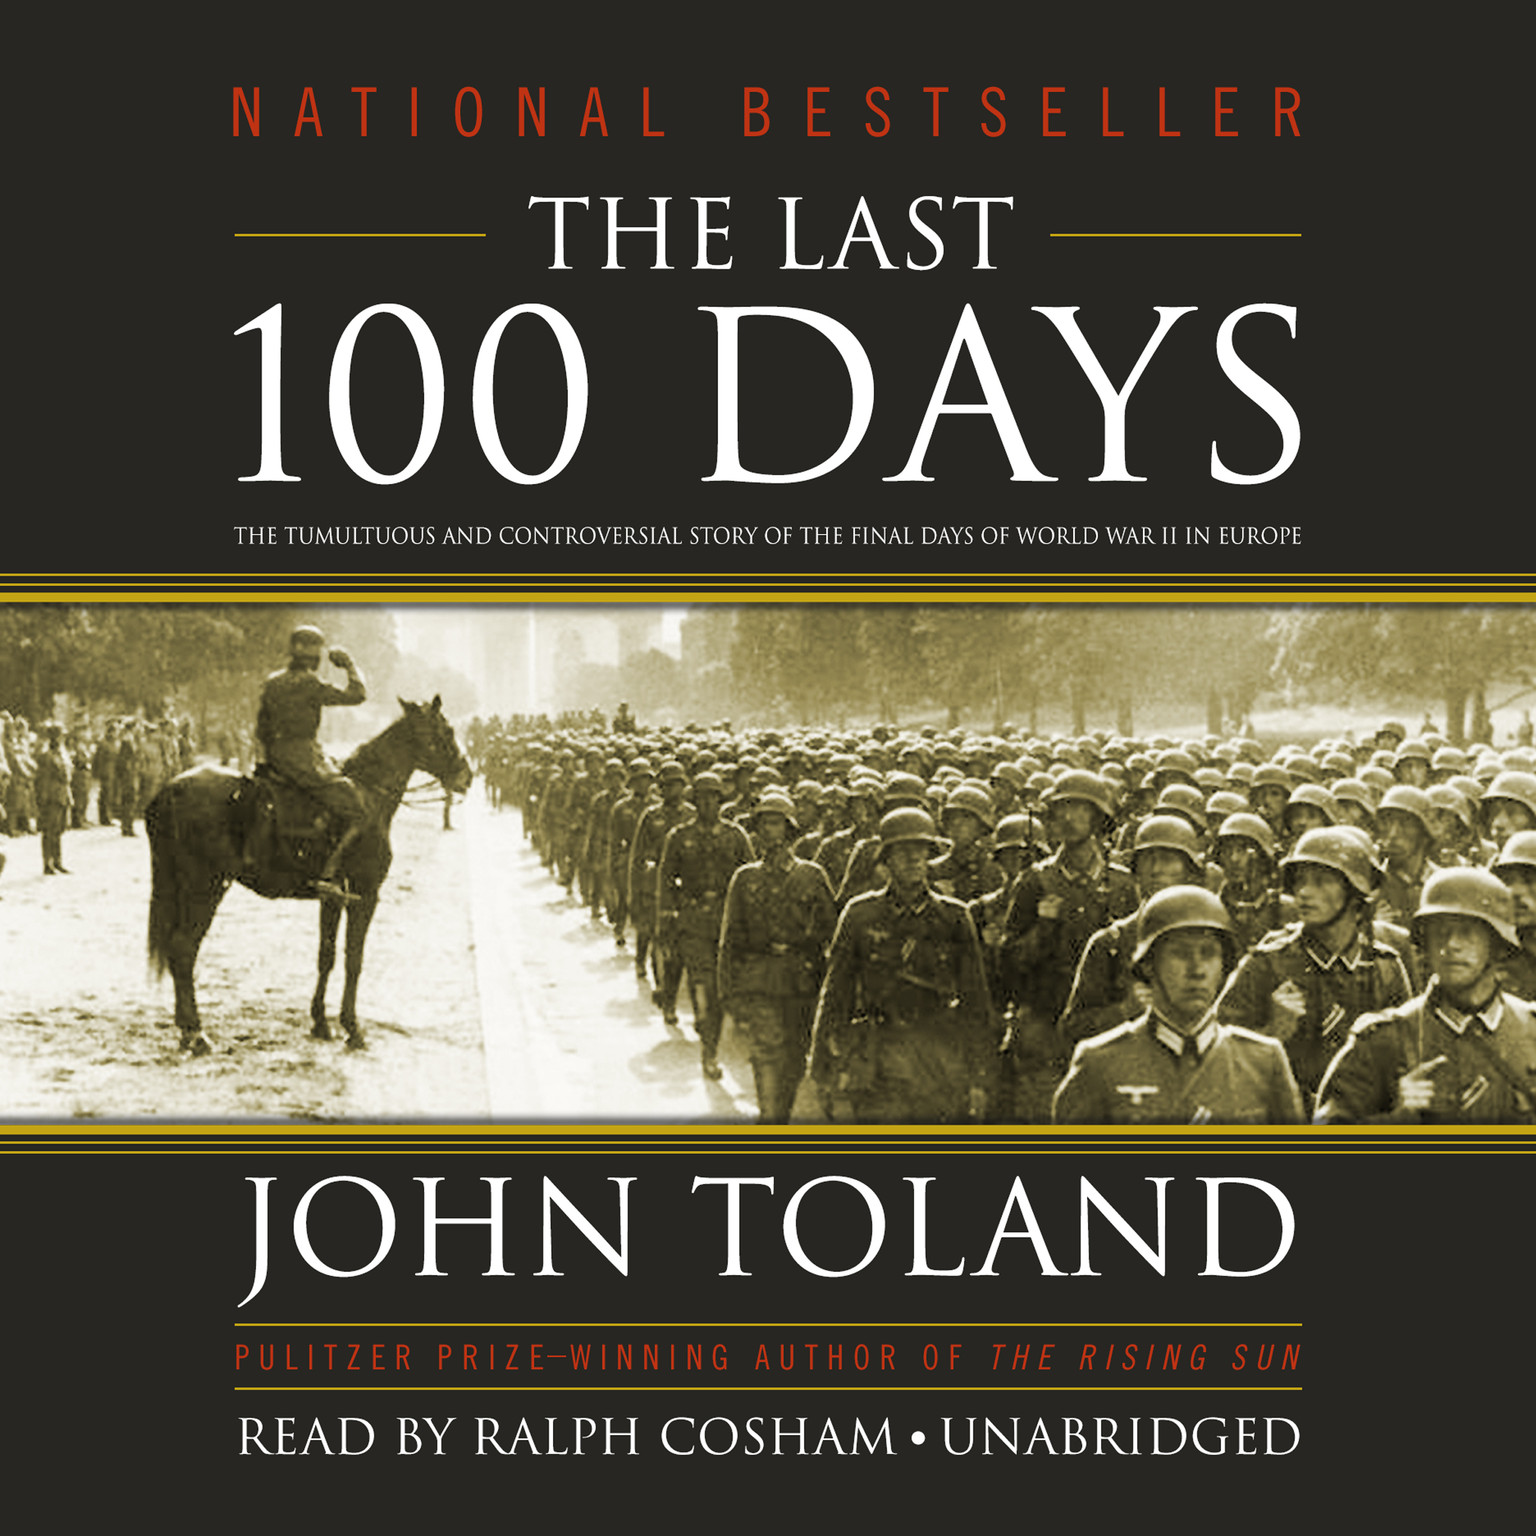 Printable The Last 100 Days: The Tumultuous and Controversial Story of the Final Days of World War II in Europe Audiobook Cover Art